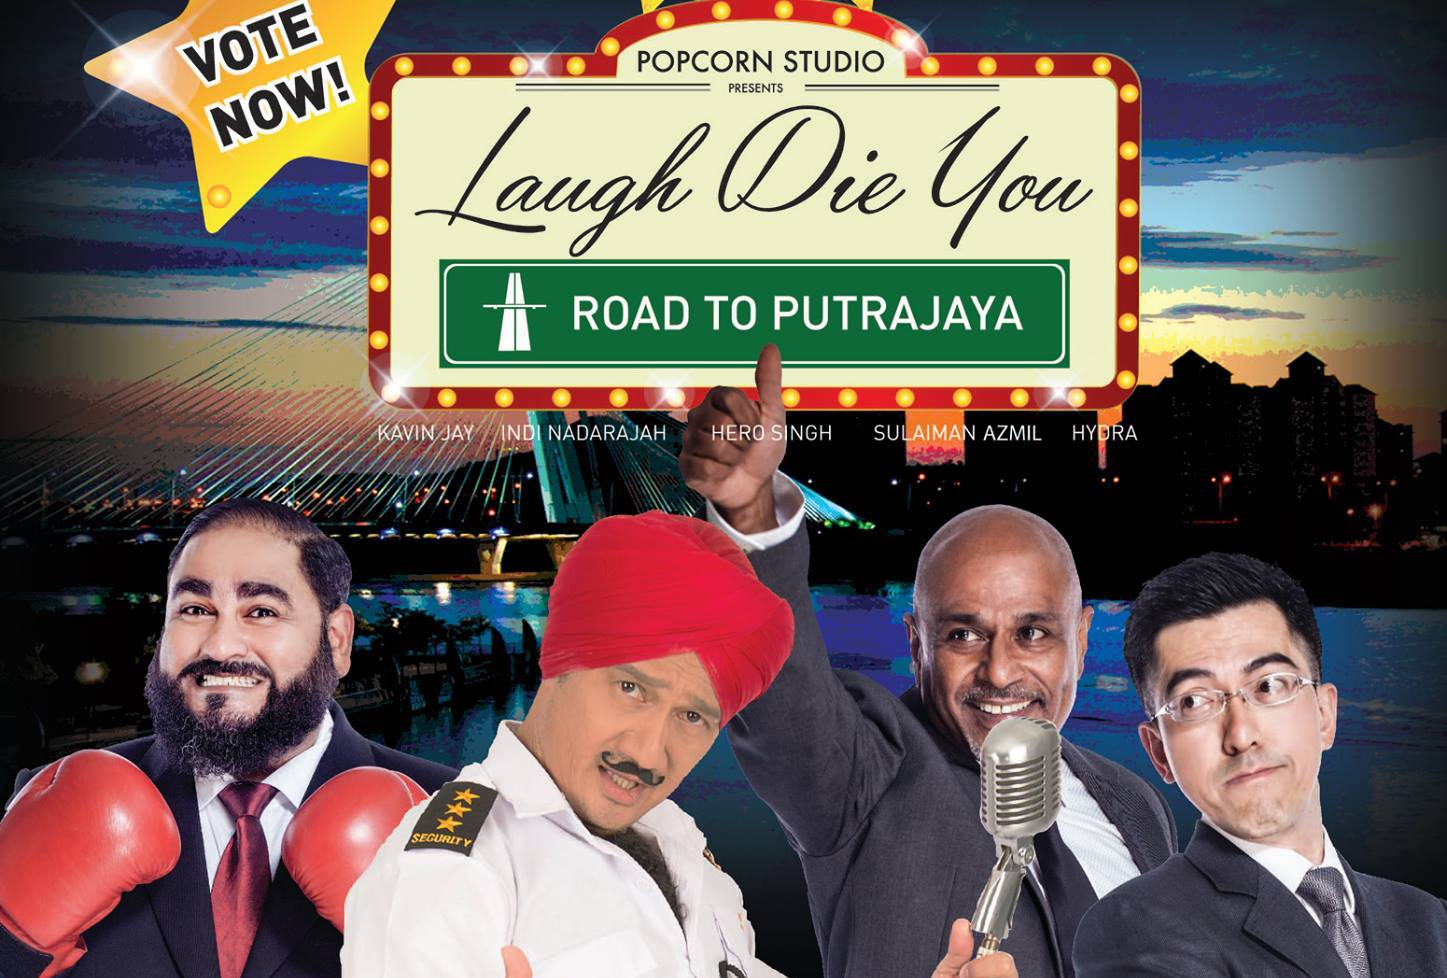 Laugh Die You - Road To Putrajaya